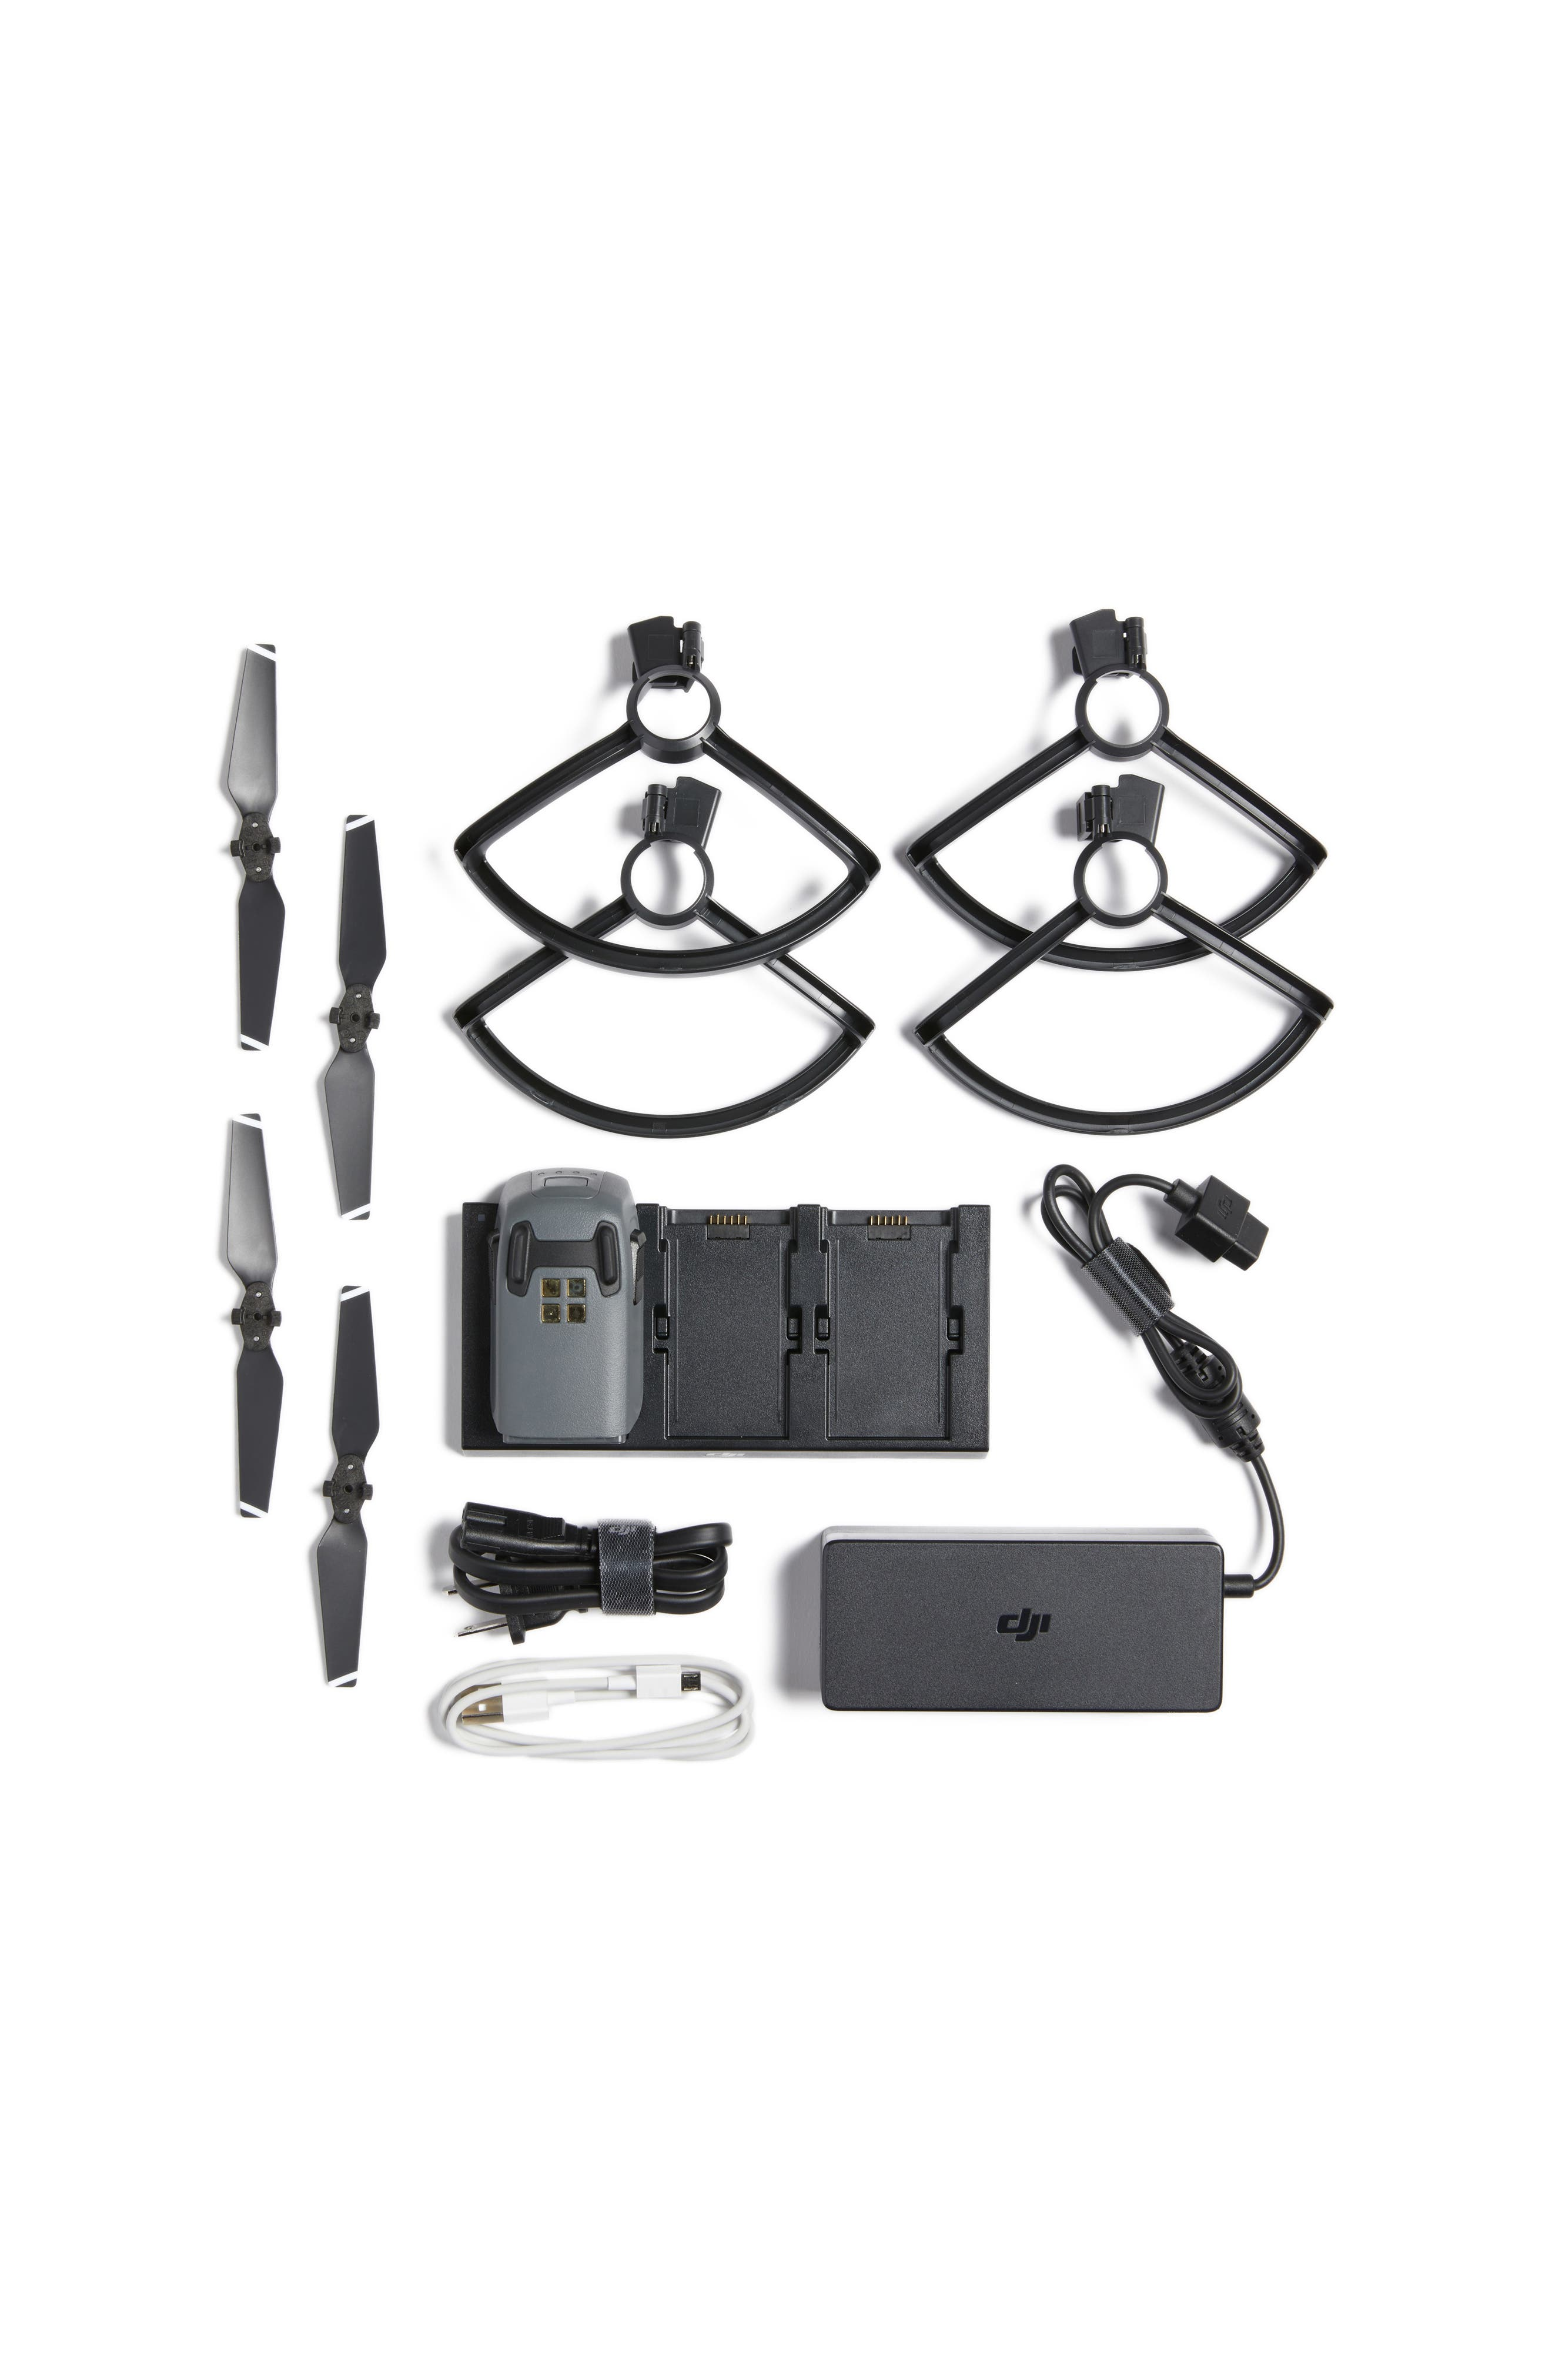 DJI,                             Spark Fly More Combo Mini Flying Quadcopter & Accessories,                             Alternate thumbnail 2, color,                             100